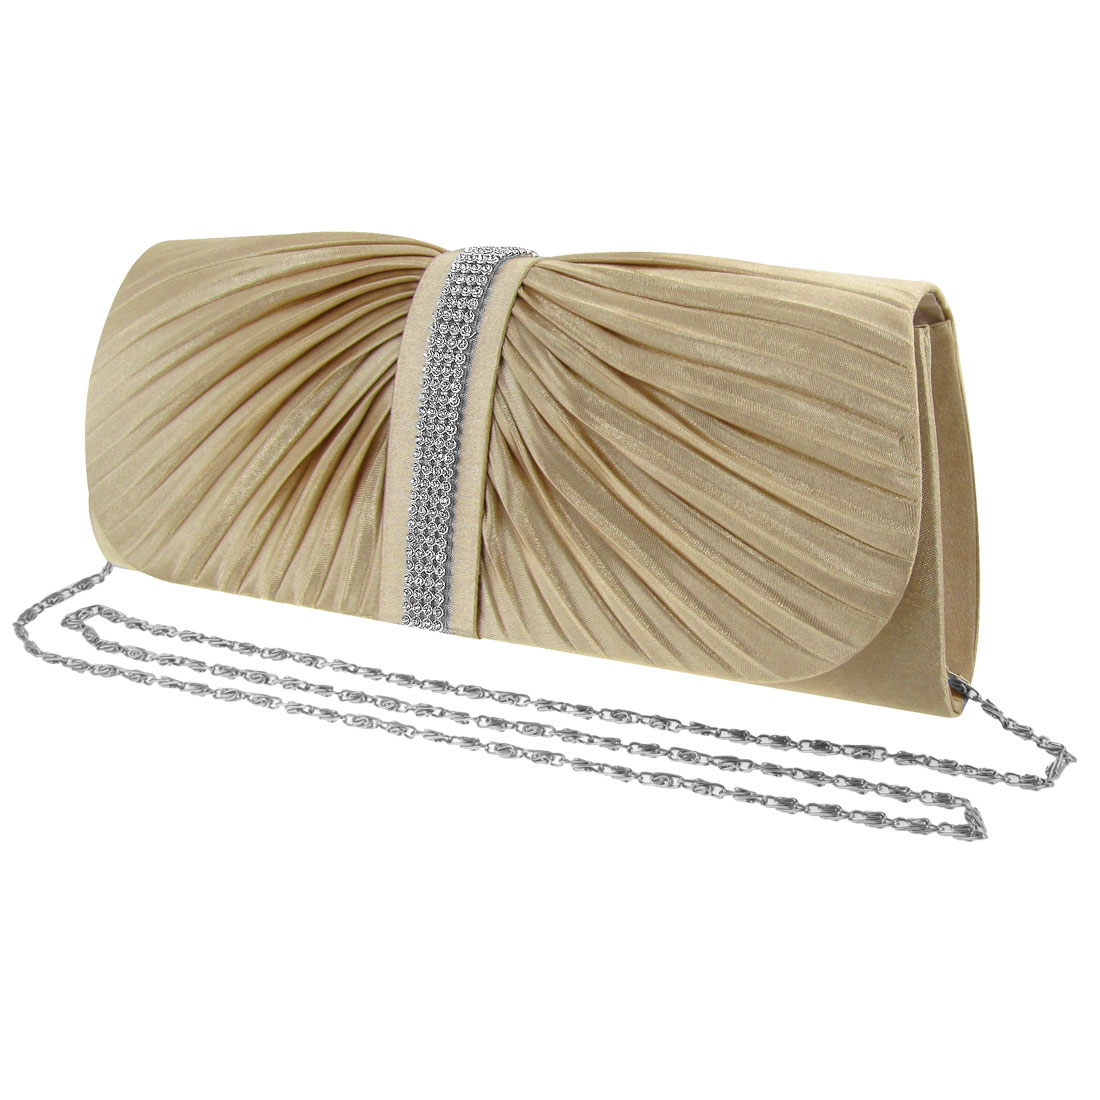 Woman Press Stud Closure Ruched Evening Chain Handbag Evening Bag Purse